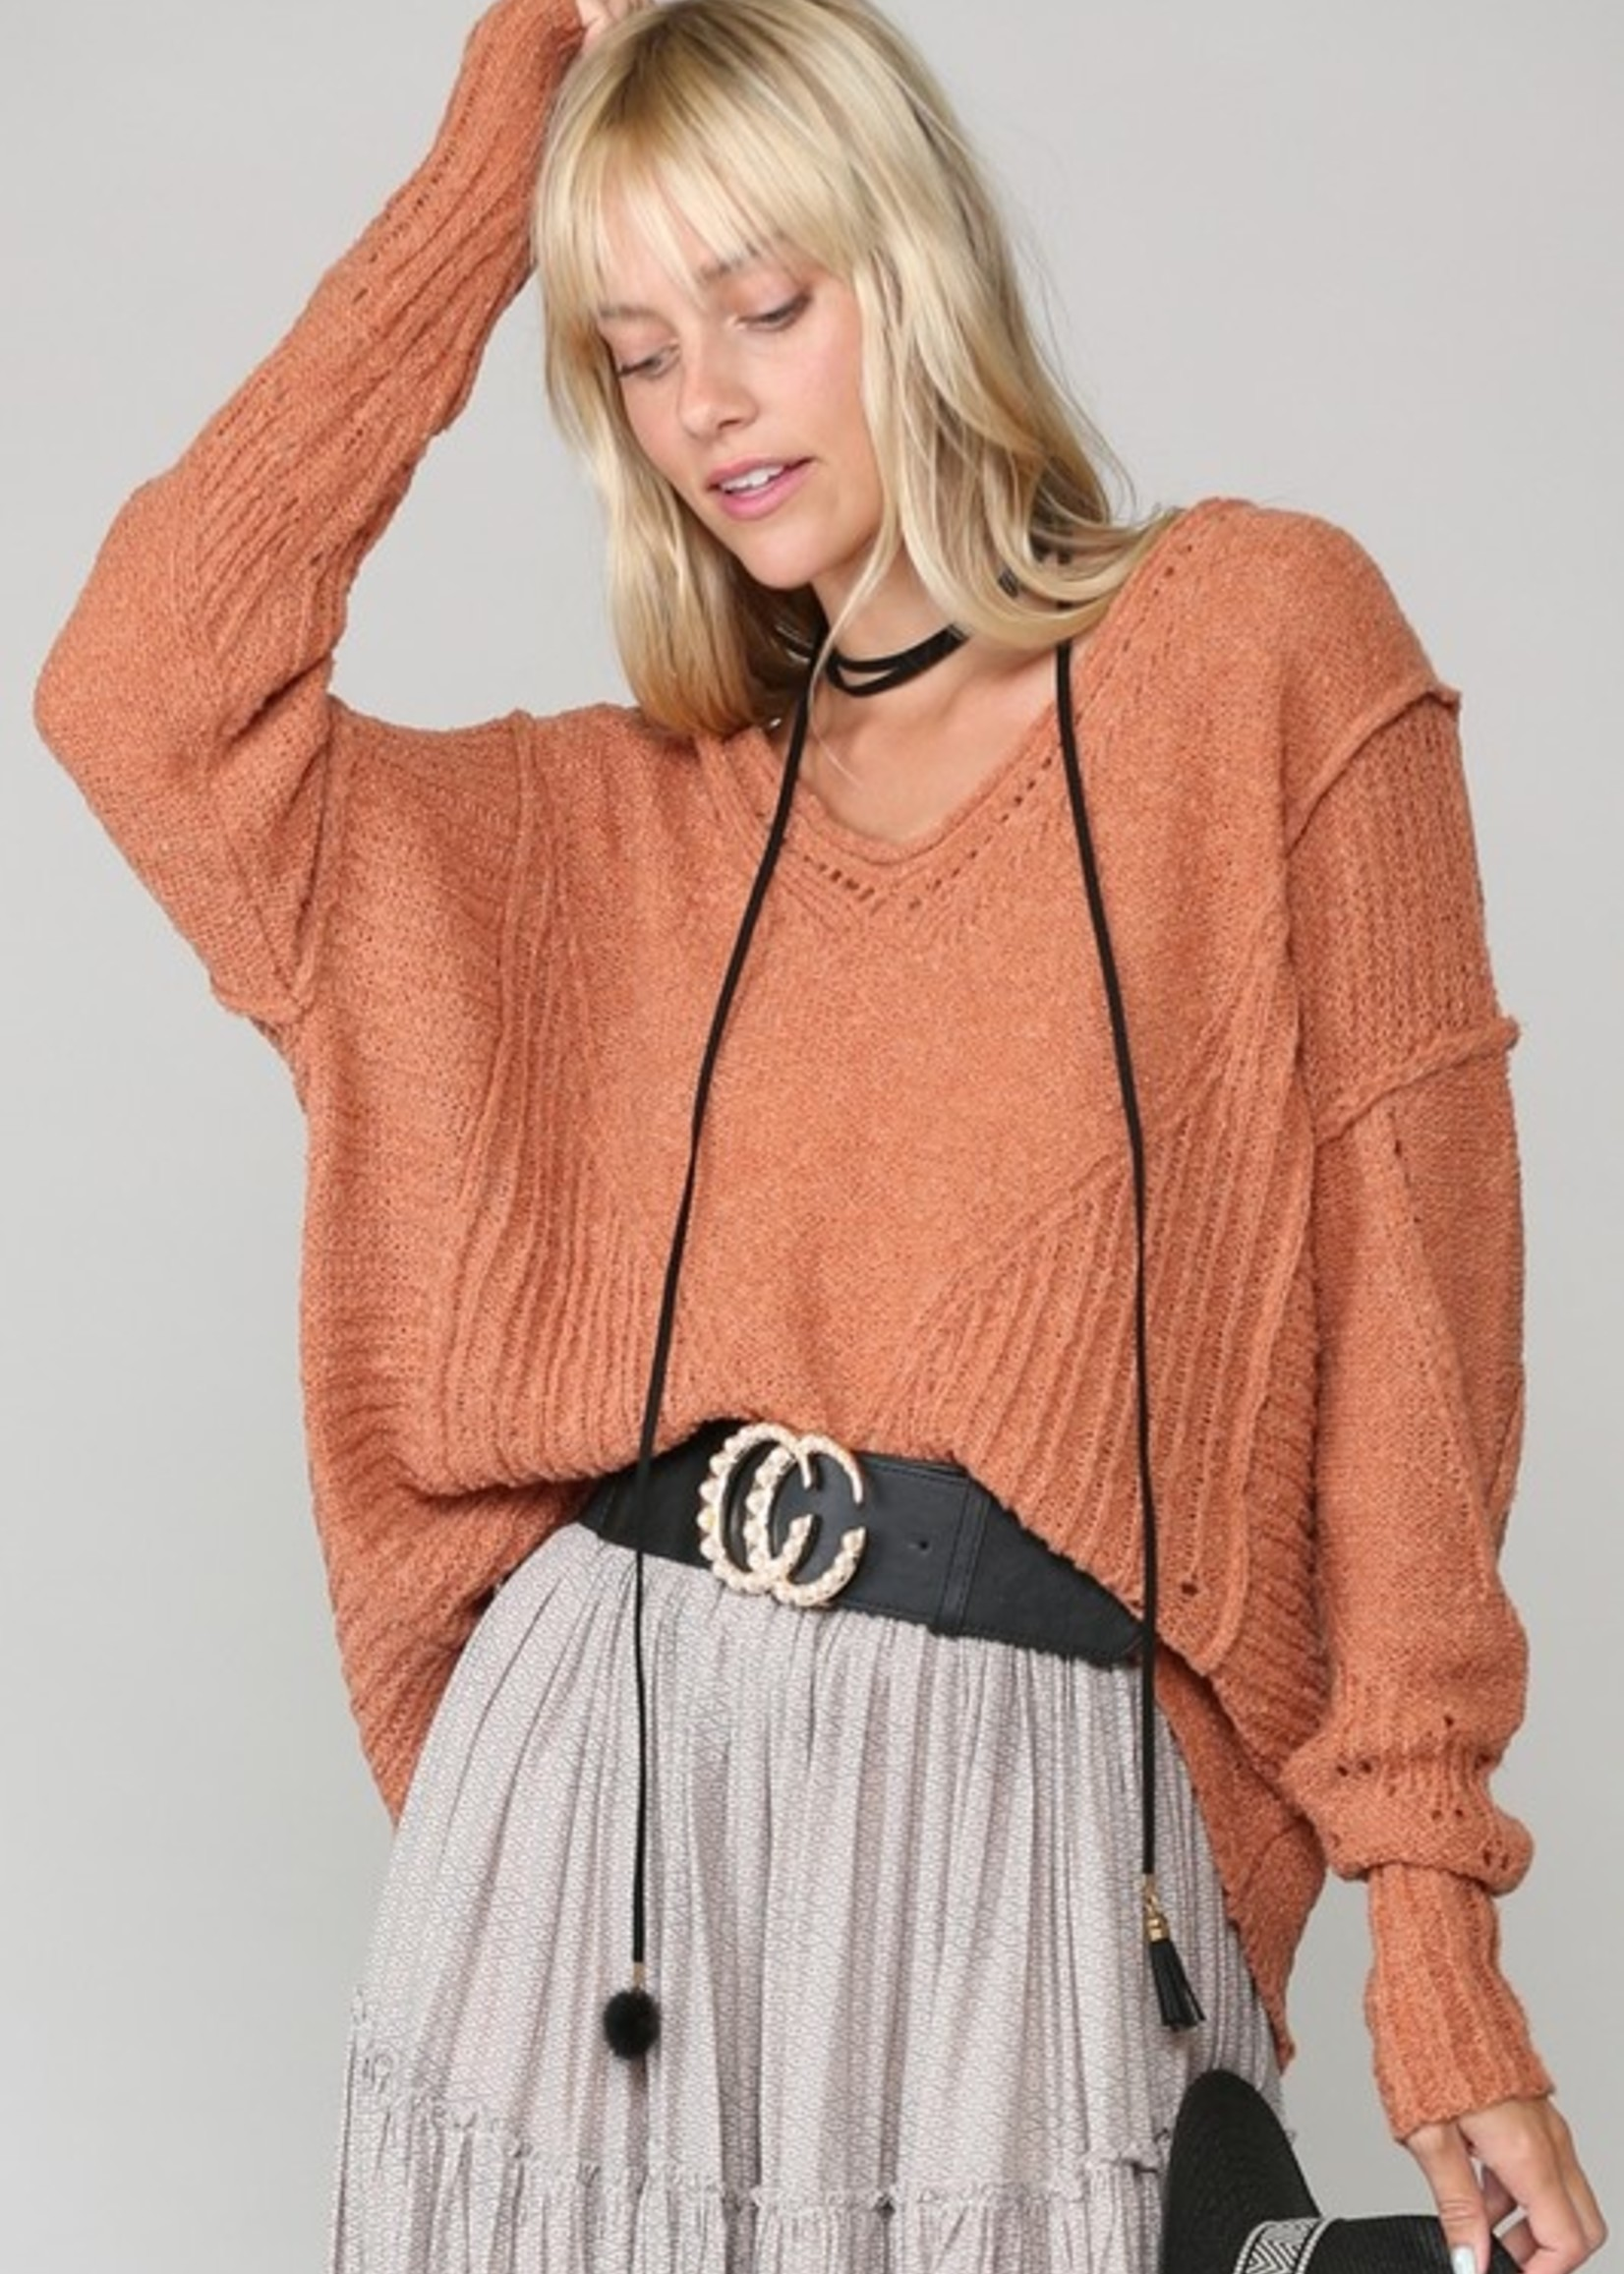 Rib accent sweater 2 colors